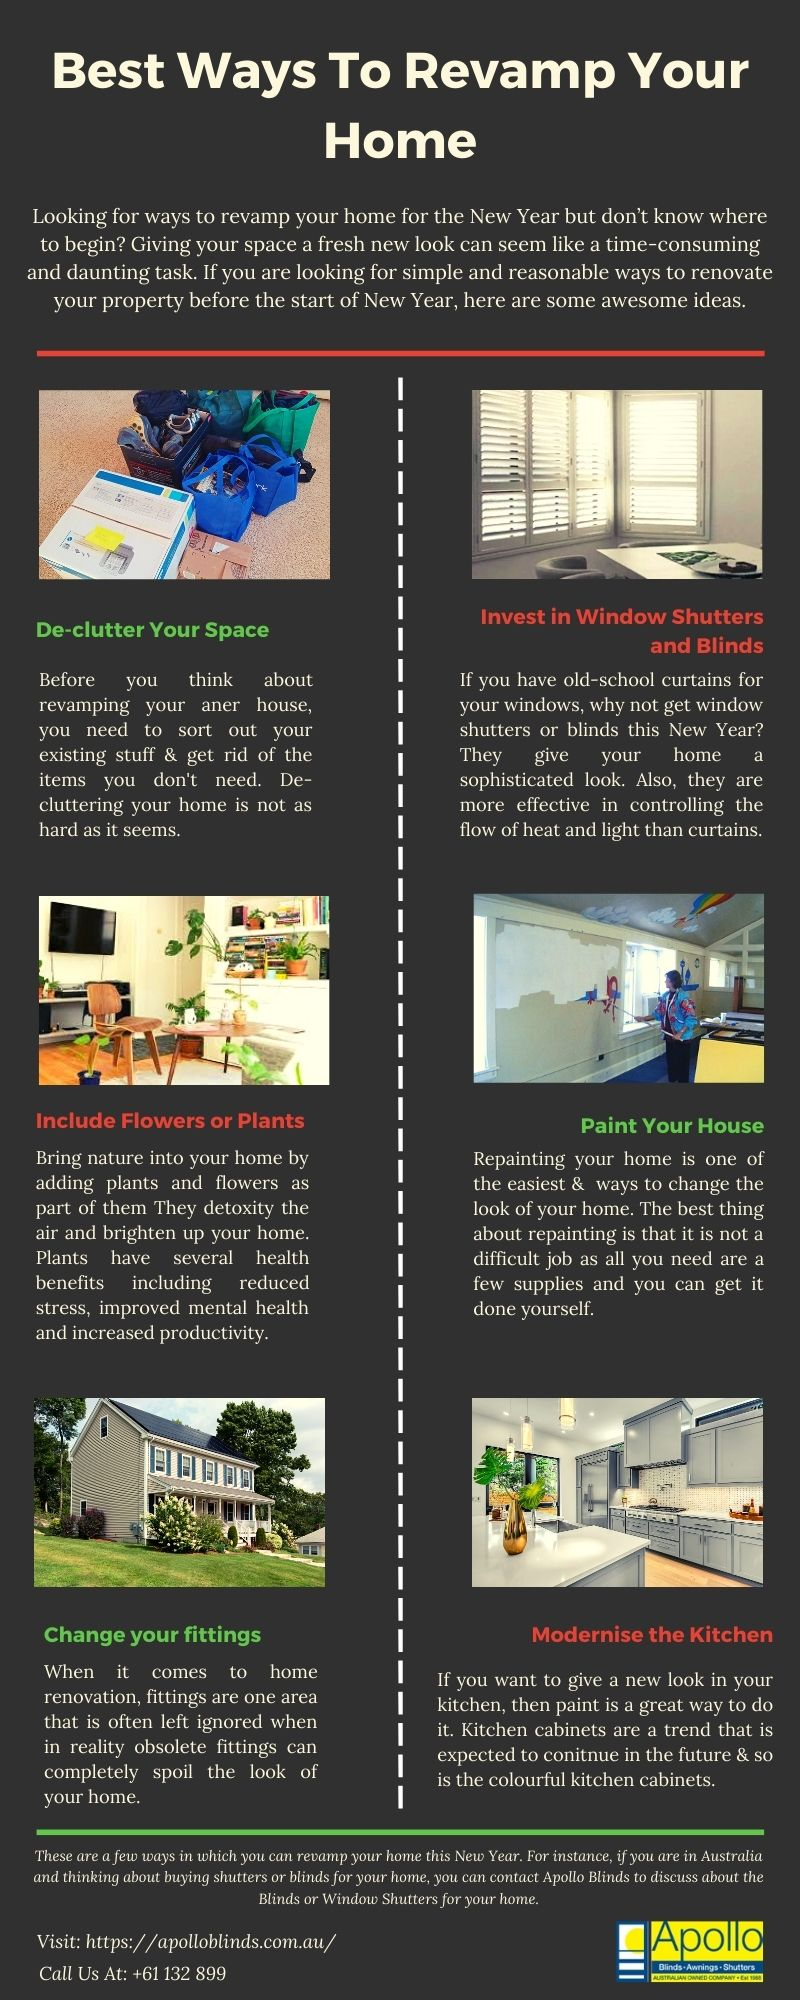 Best Ways To Revamp Your Home